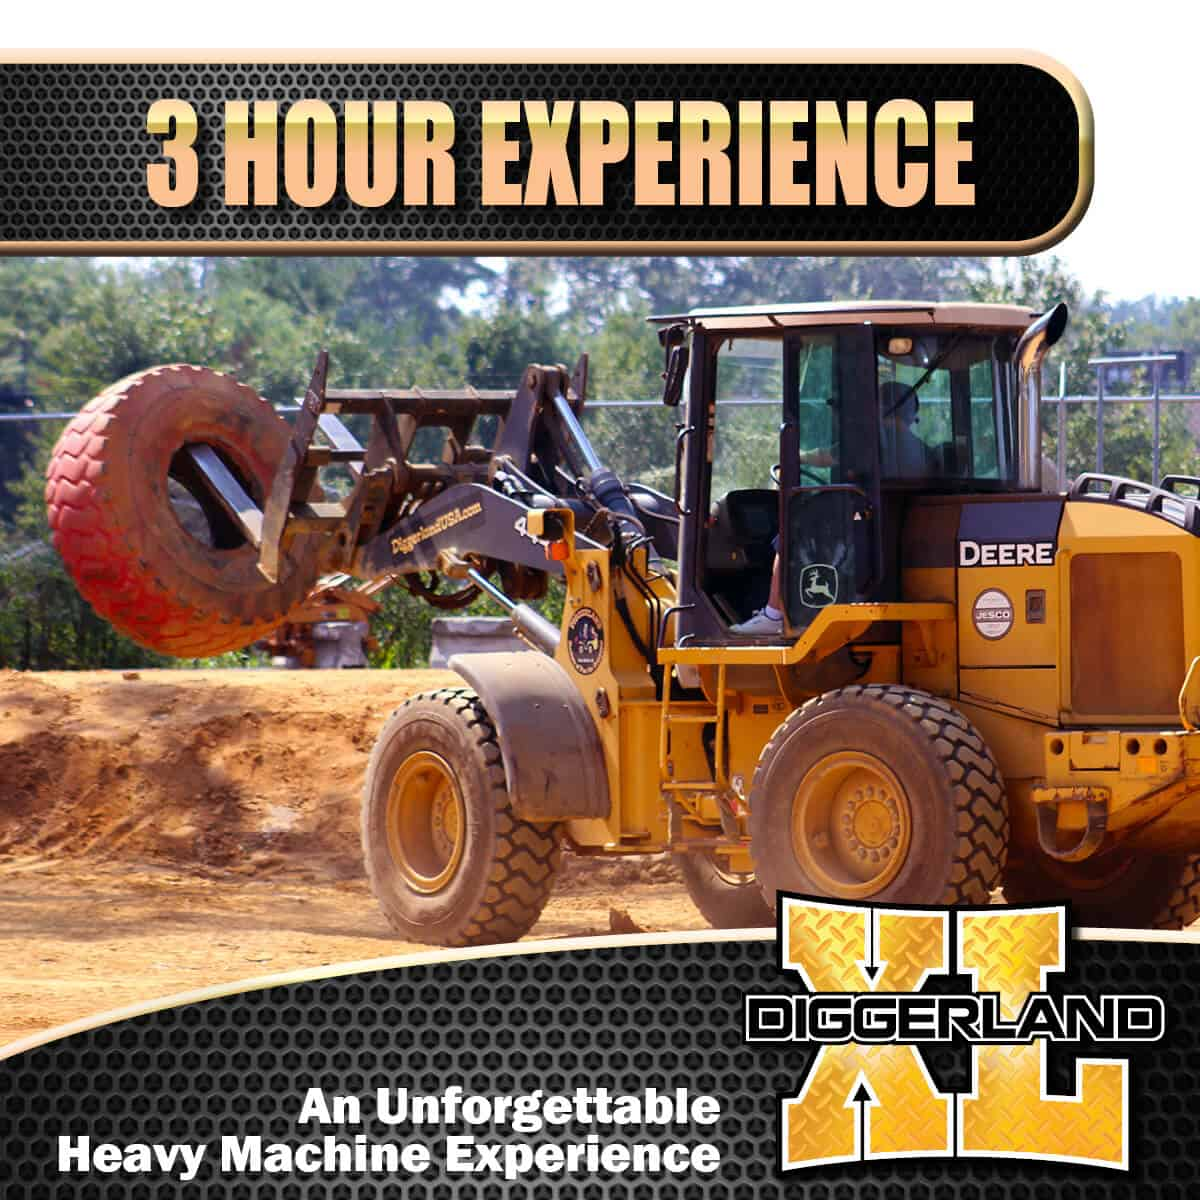 Diggerland XL experience 3 hour package